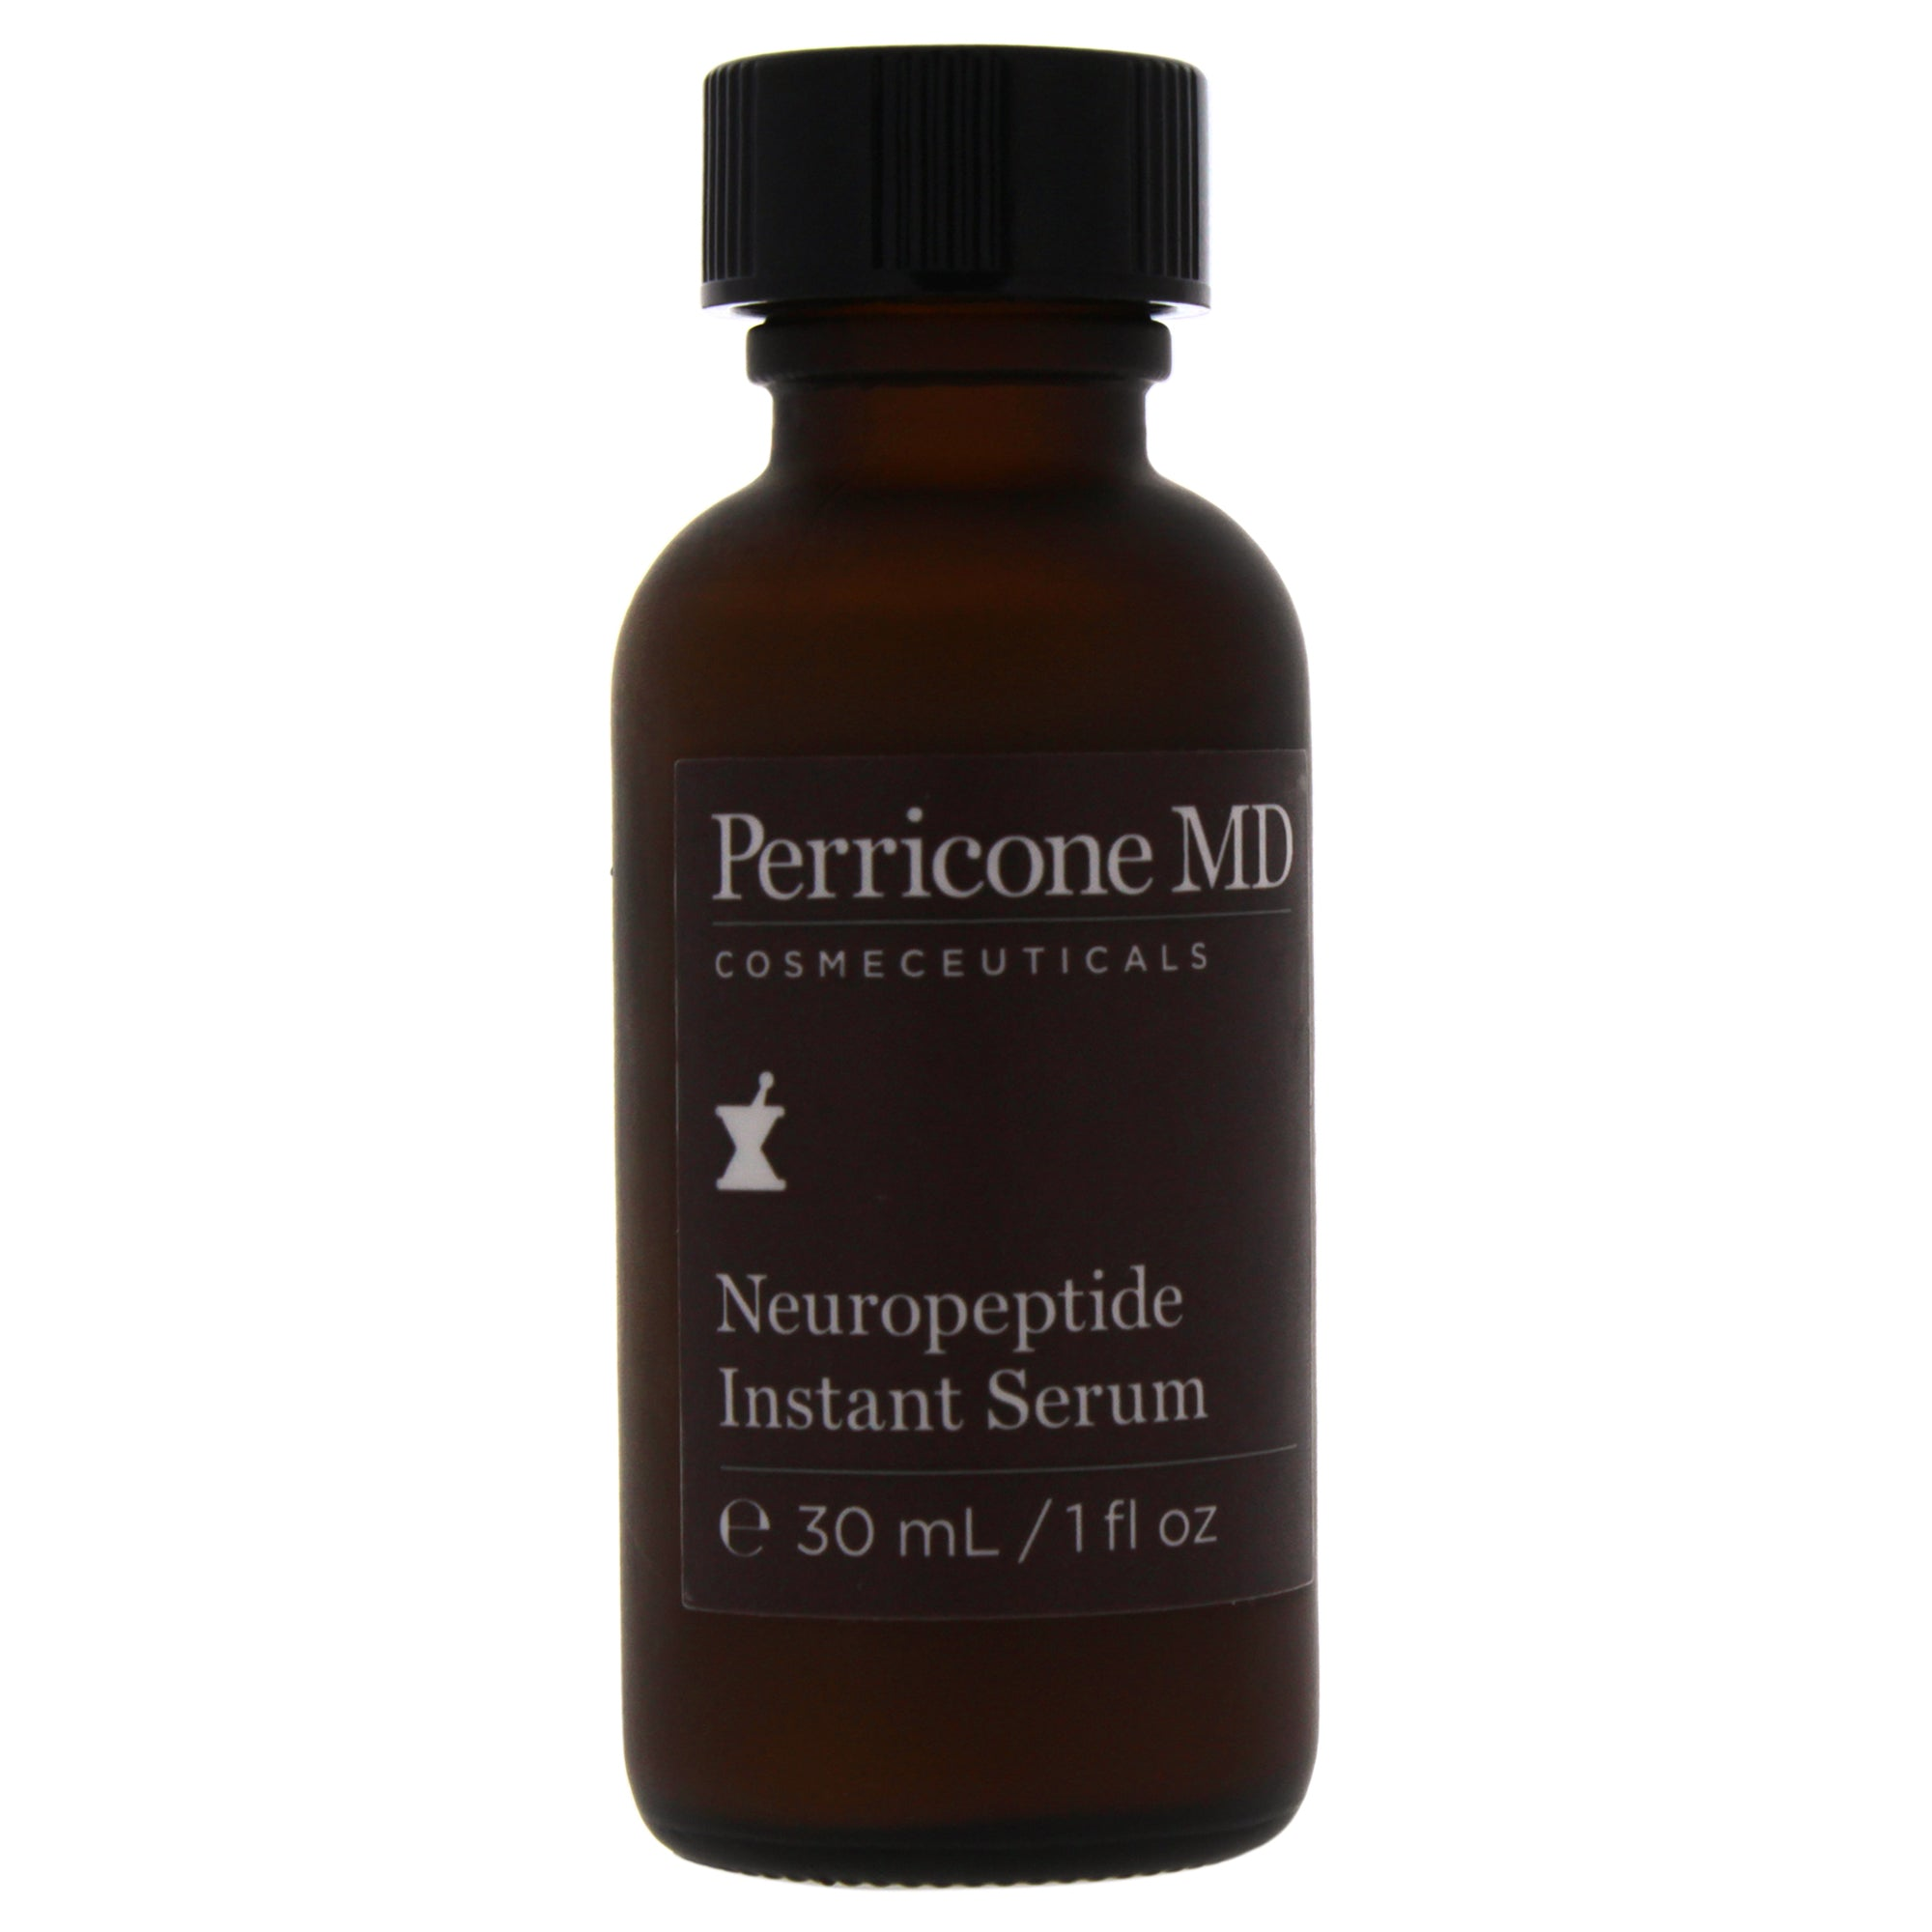 Perricone MD Neuropeptide Instant Serum